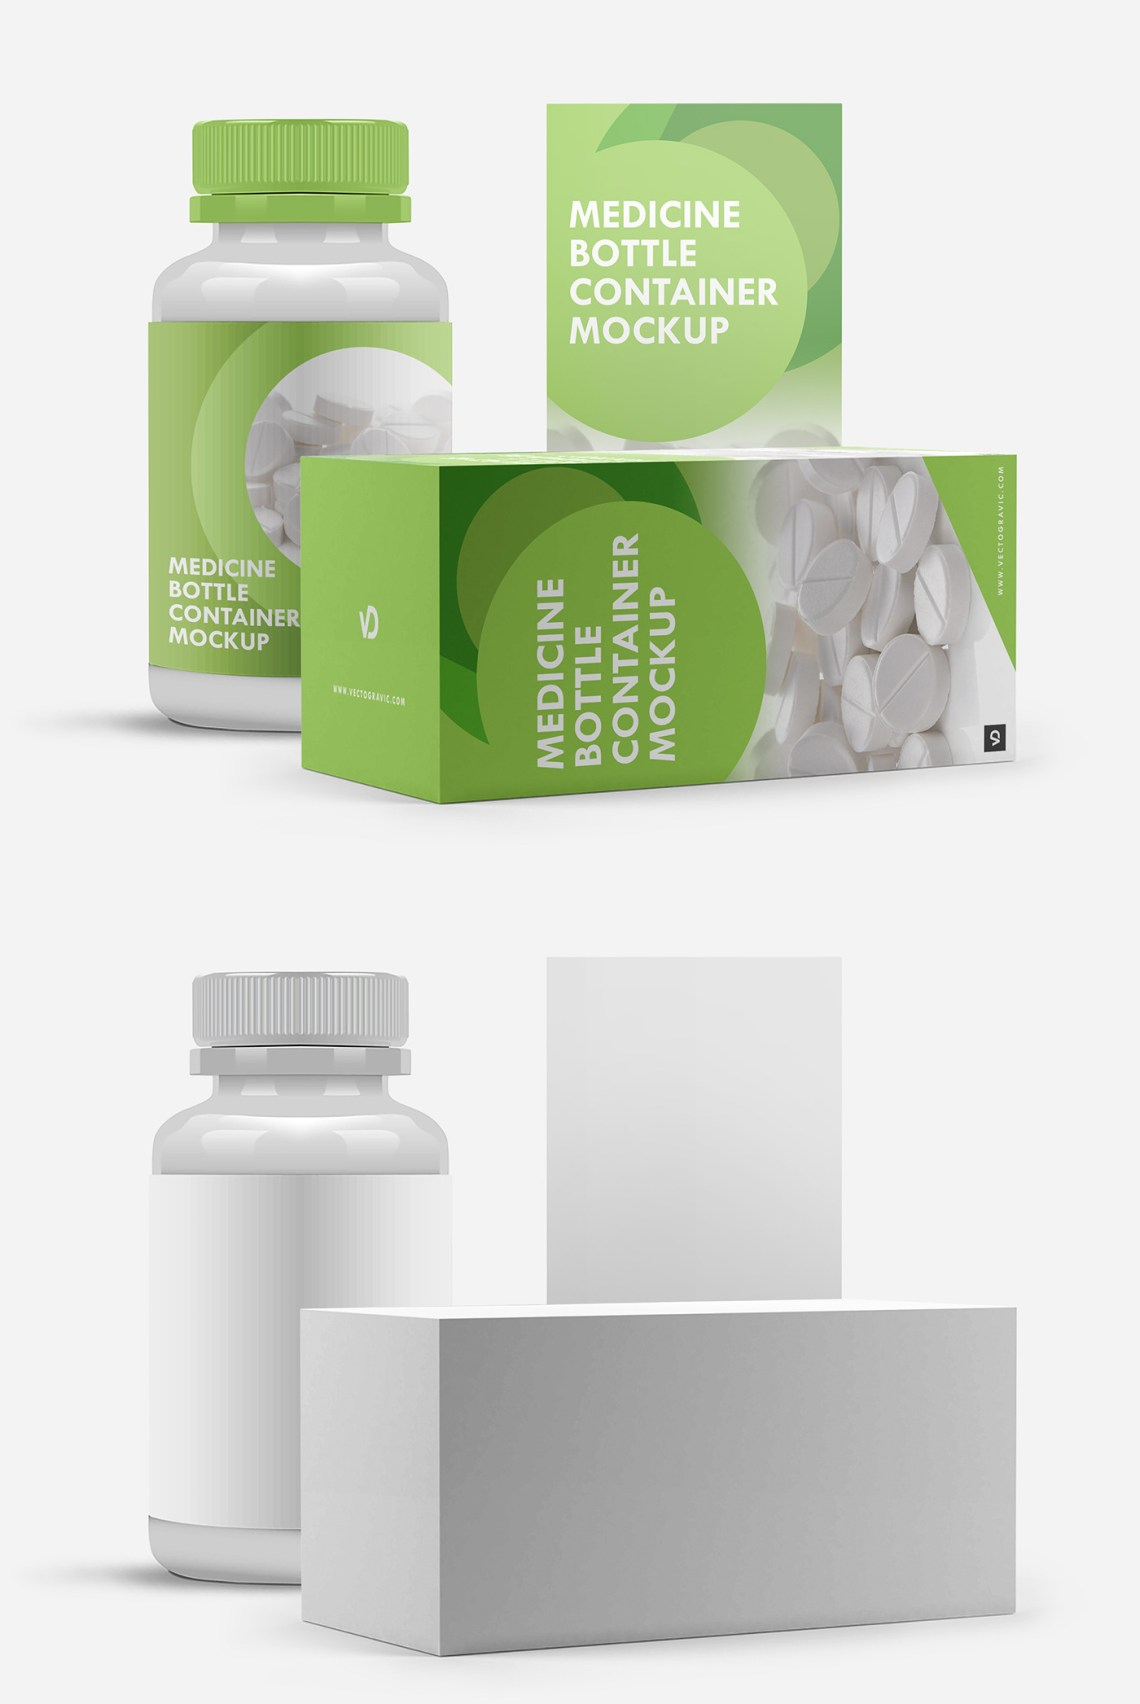 Download Free Medicine Bottle Container Mockup on Behance